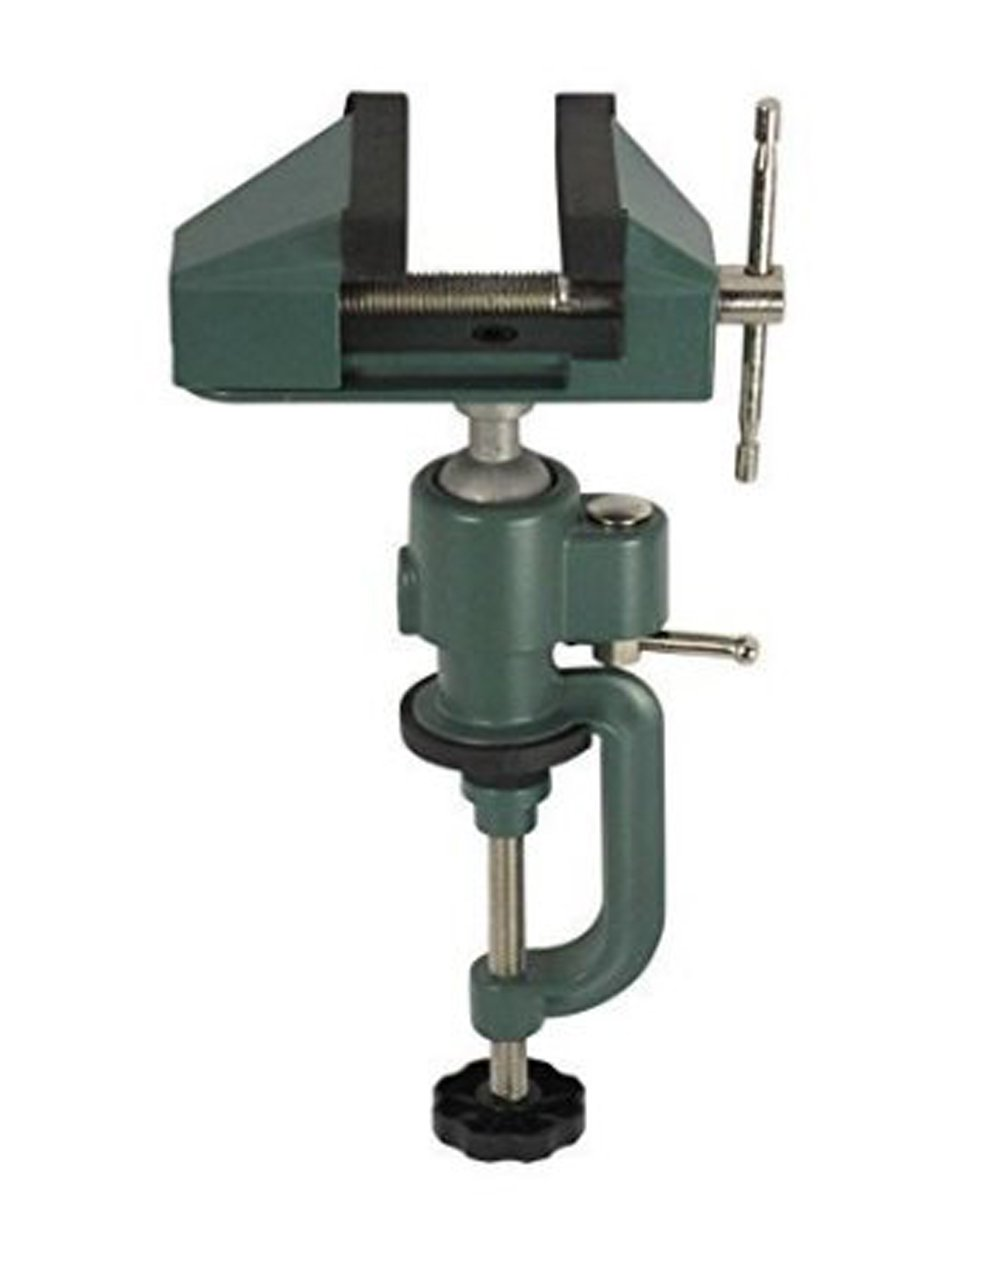 BENCH VISE SWIVEL 3'' TABLETOP CLAMP BASE VICE TILTS & ROTATES 360° HOBBY CRAFT